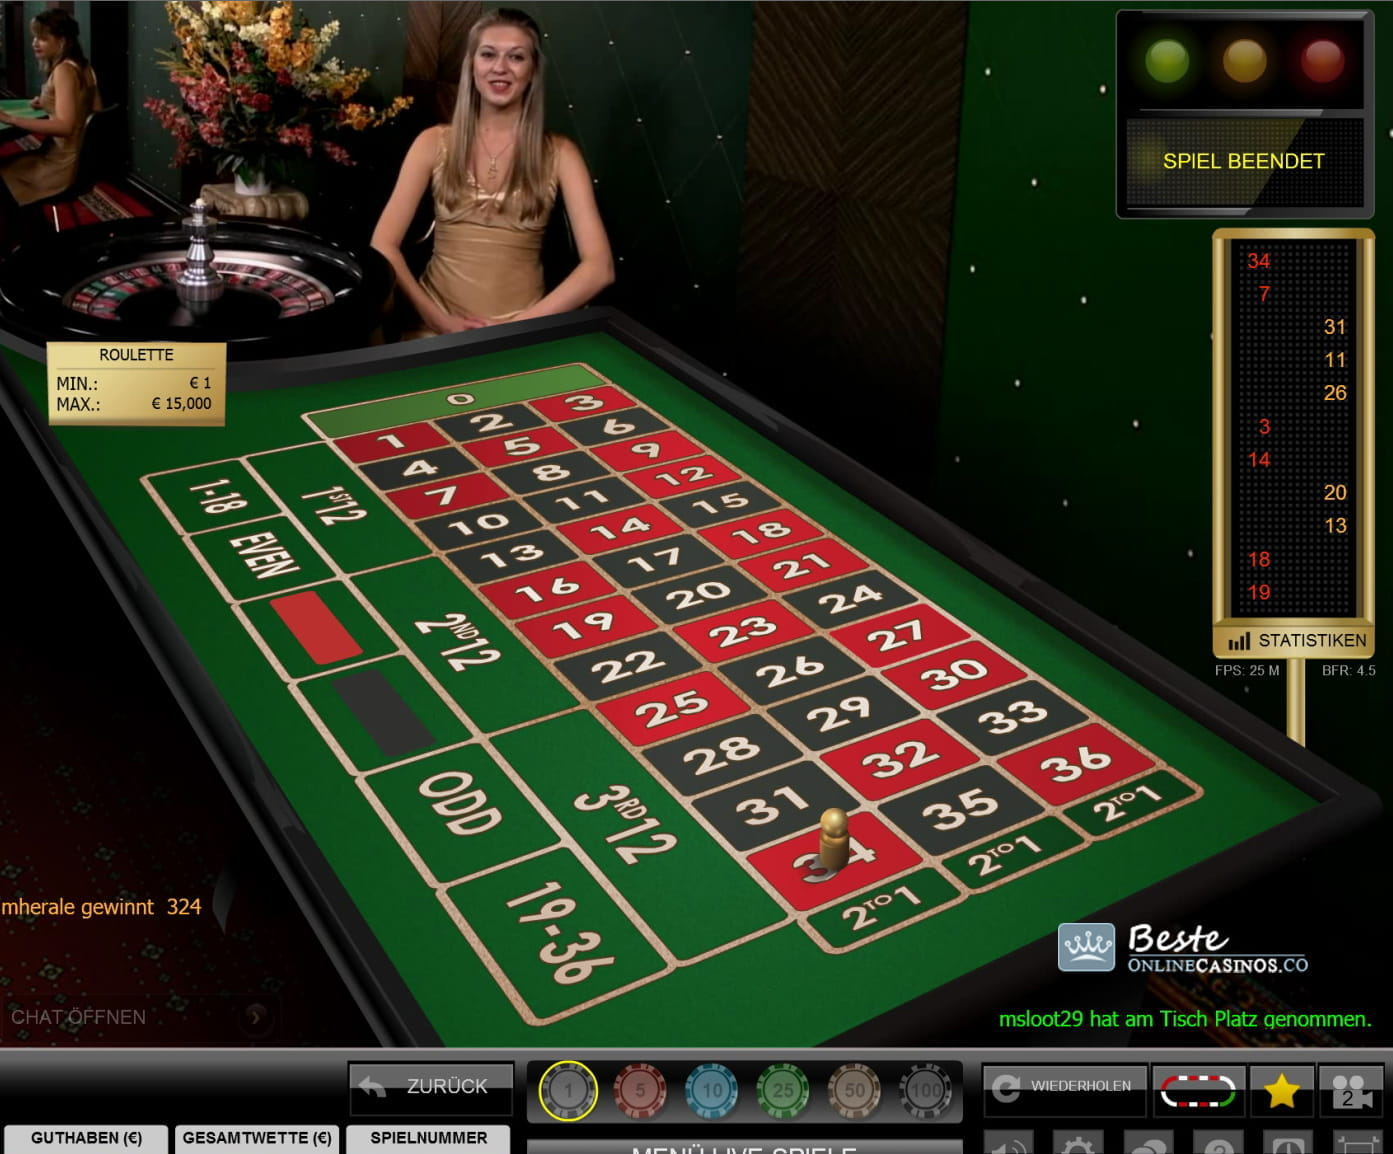 Beste online roulette casinos aria casino and resort reviews